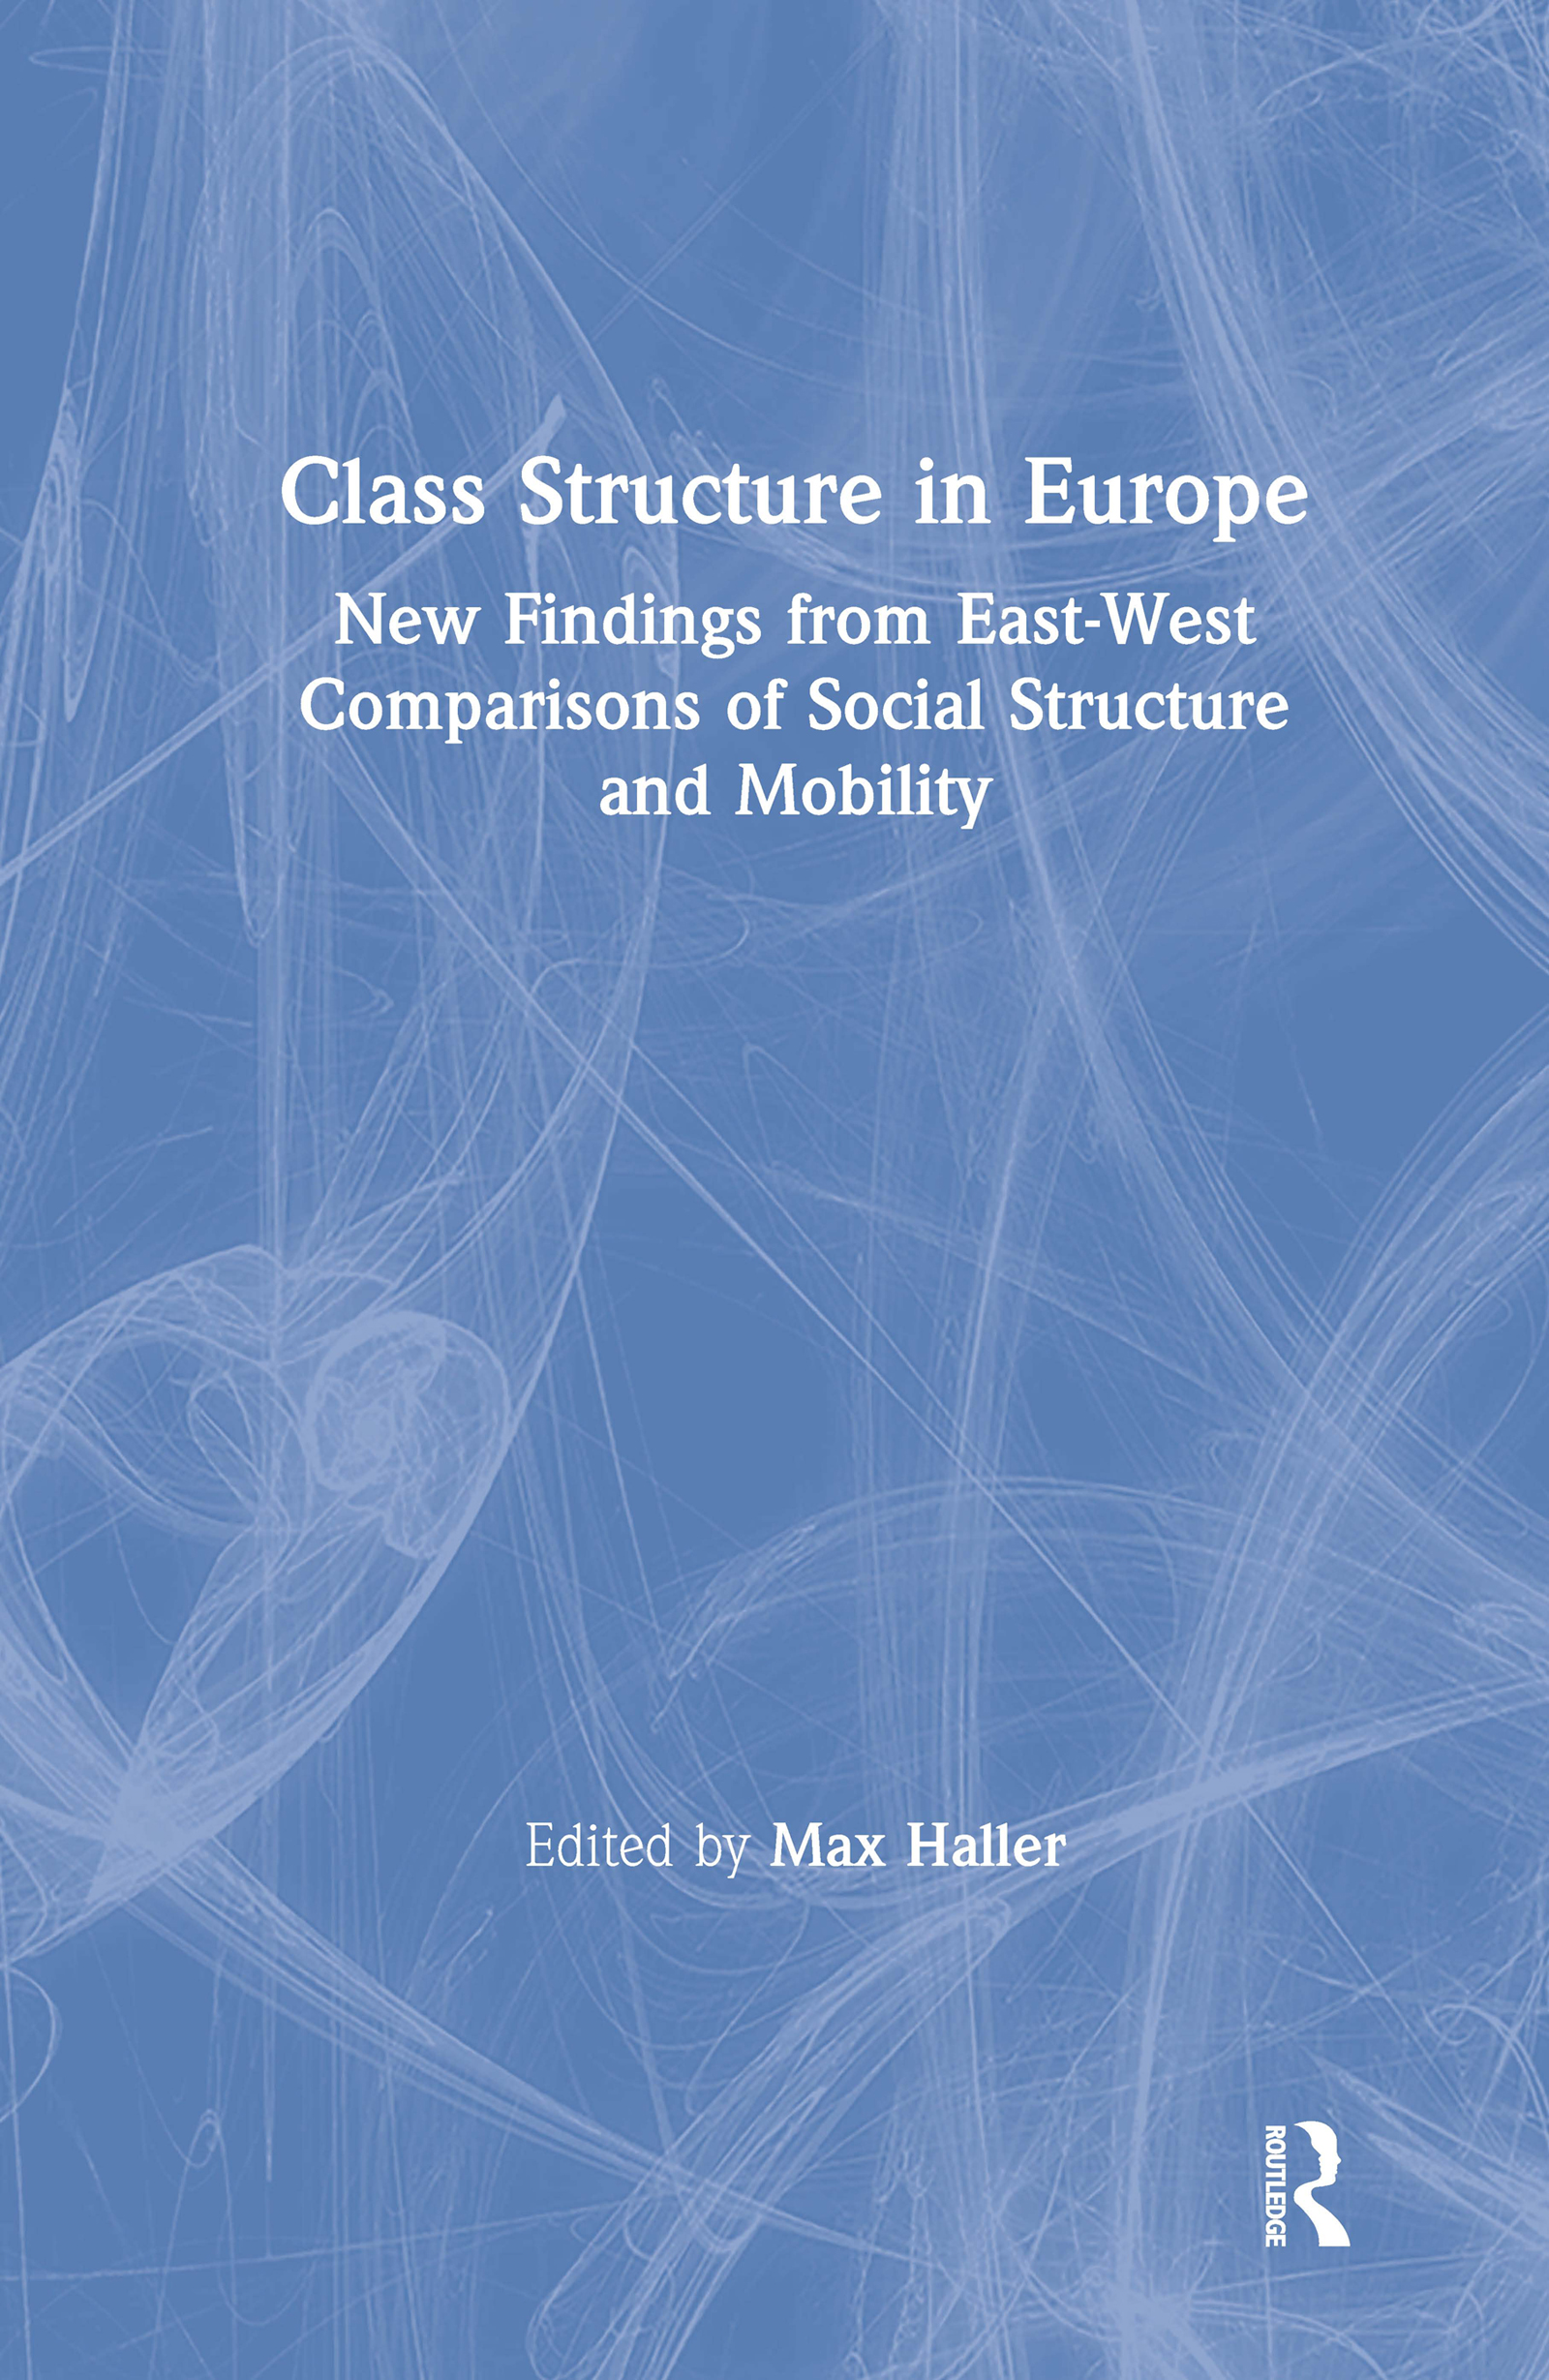 Class Structure in Europe: New Findings from East-West Comparisons of Social Structure and Mobility: New Findings from East-West Comparisons of Social Structure and Mobility book cover